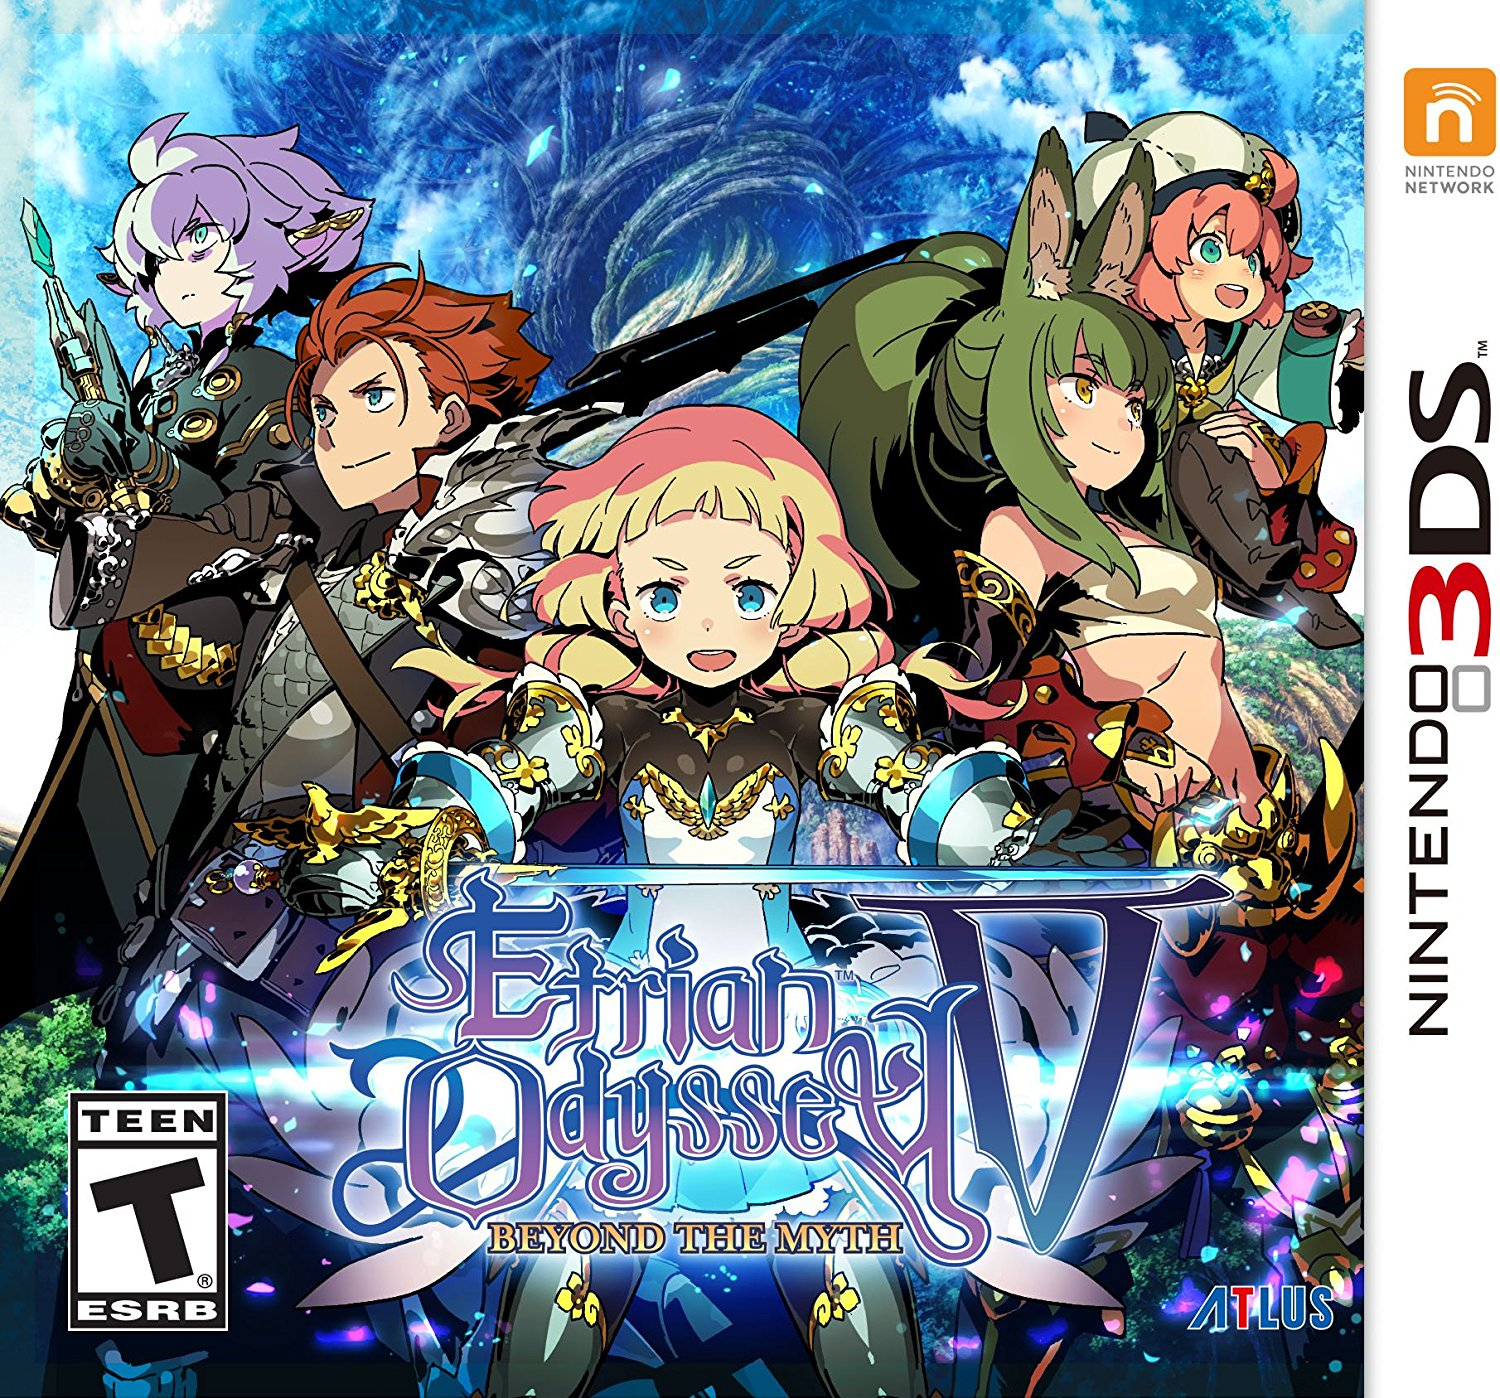 Download 3DS CIAs: Etrian Odyssey V: Beyond The Myth